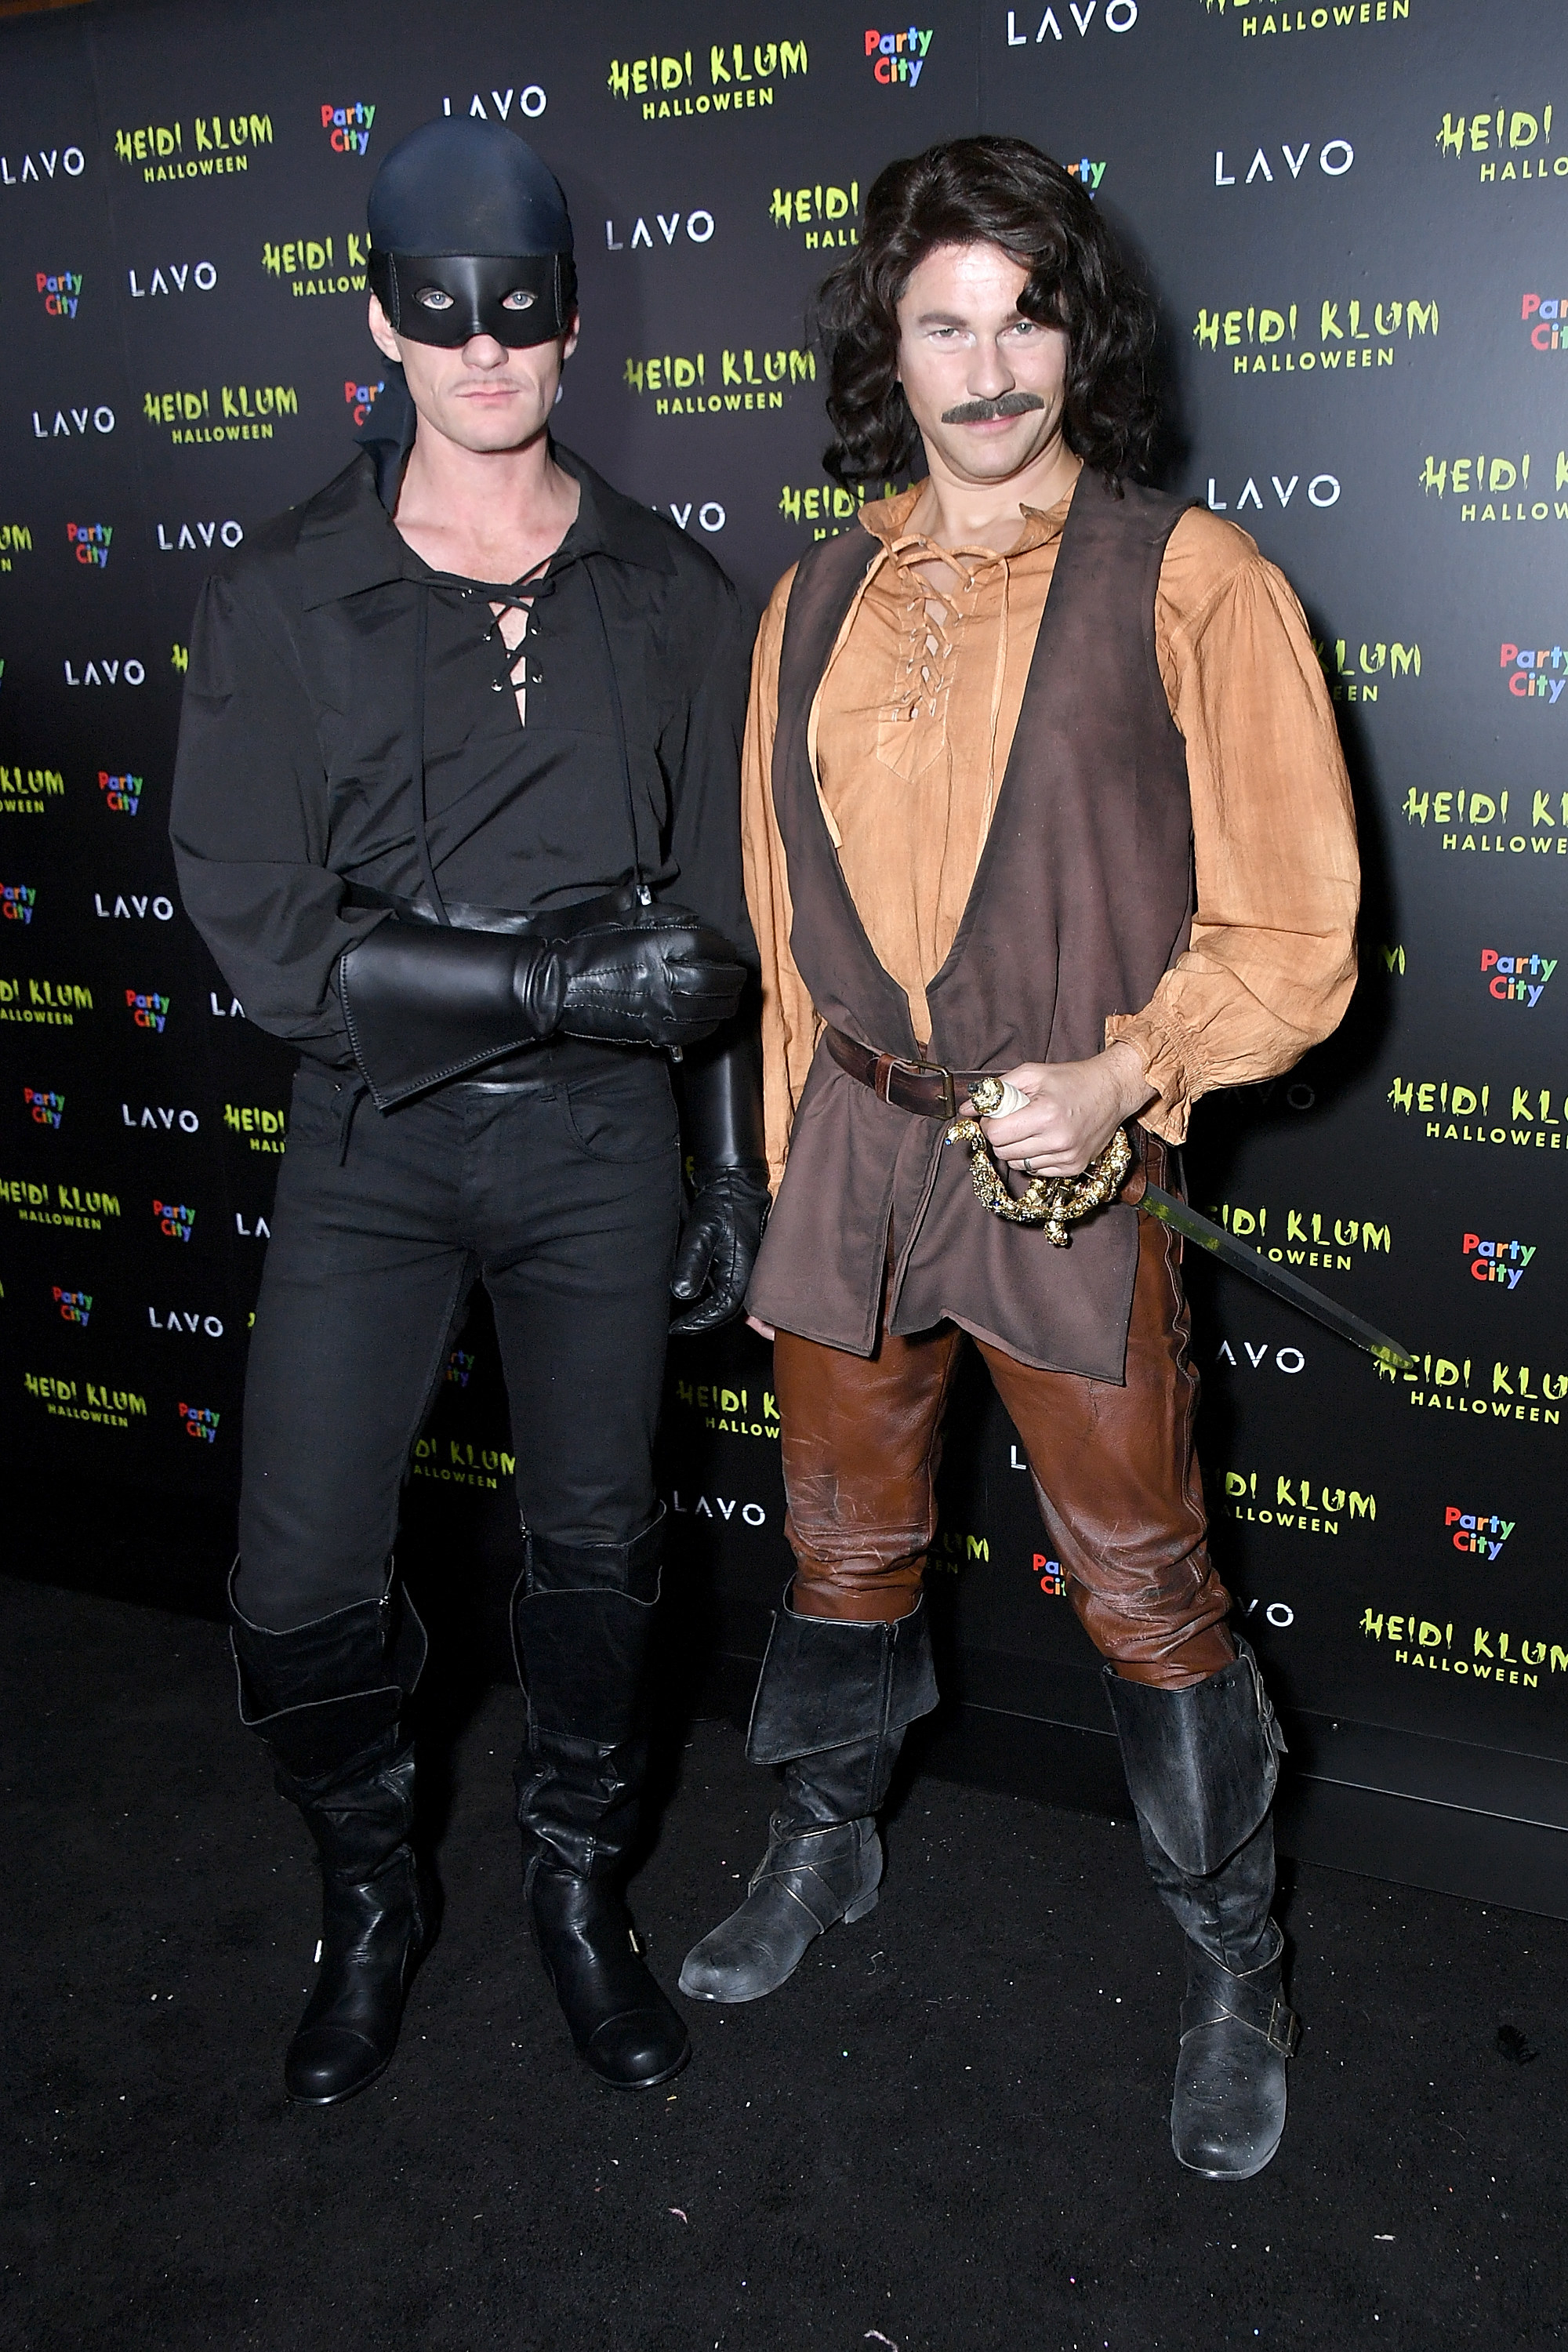 Two men dressed in costumes.